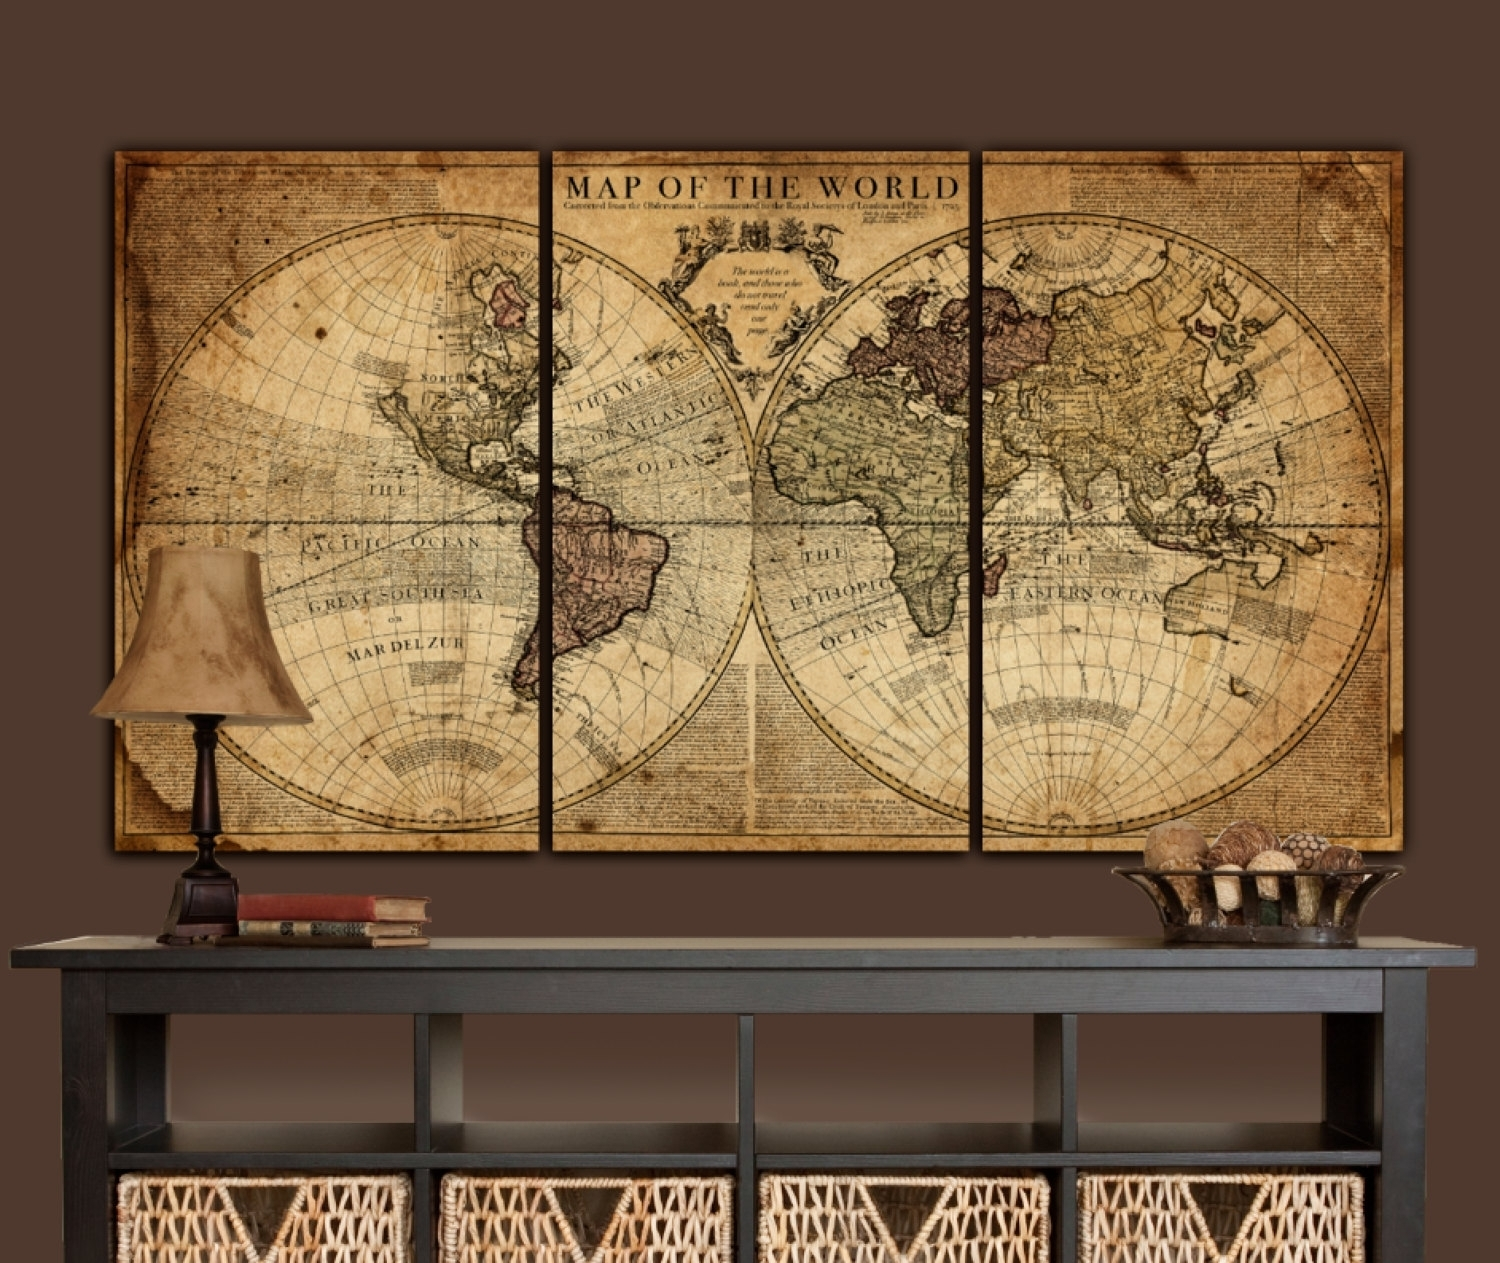 Unique Old World Wall Art Decor | Decorating Ideas 2018 pertaining to Old World Map Wall Art (Image 15 of 20)